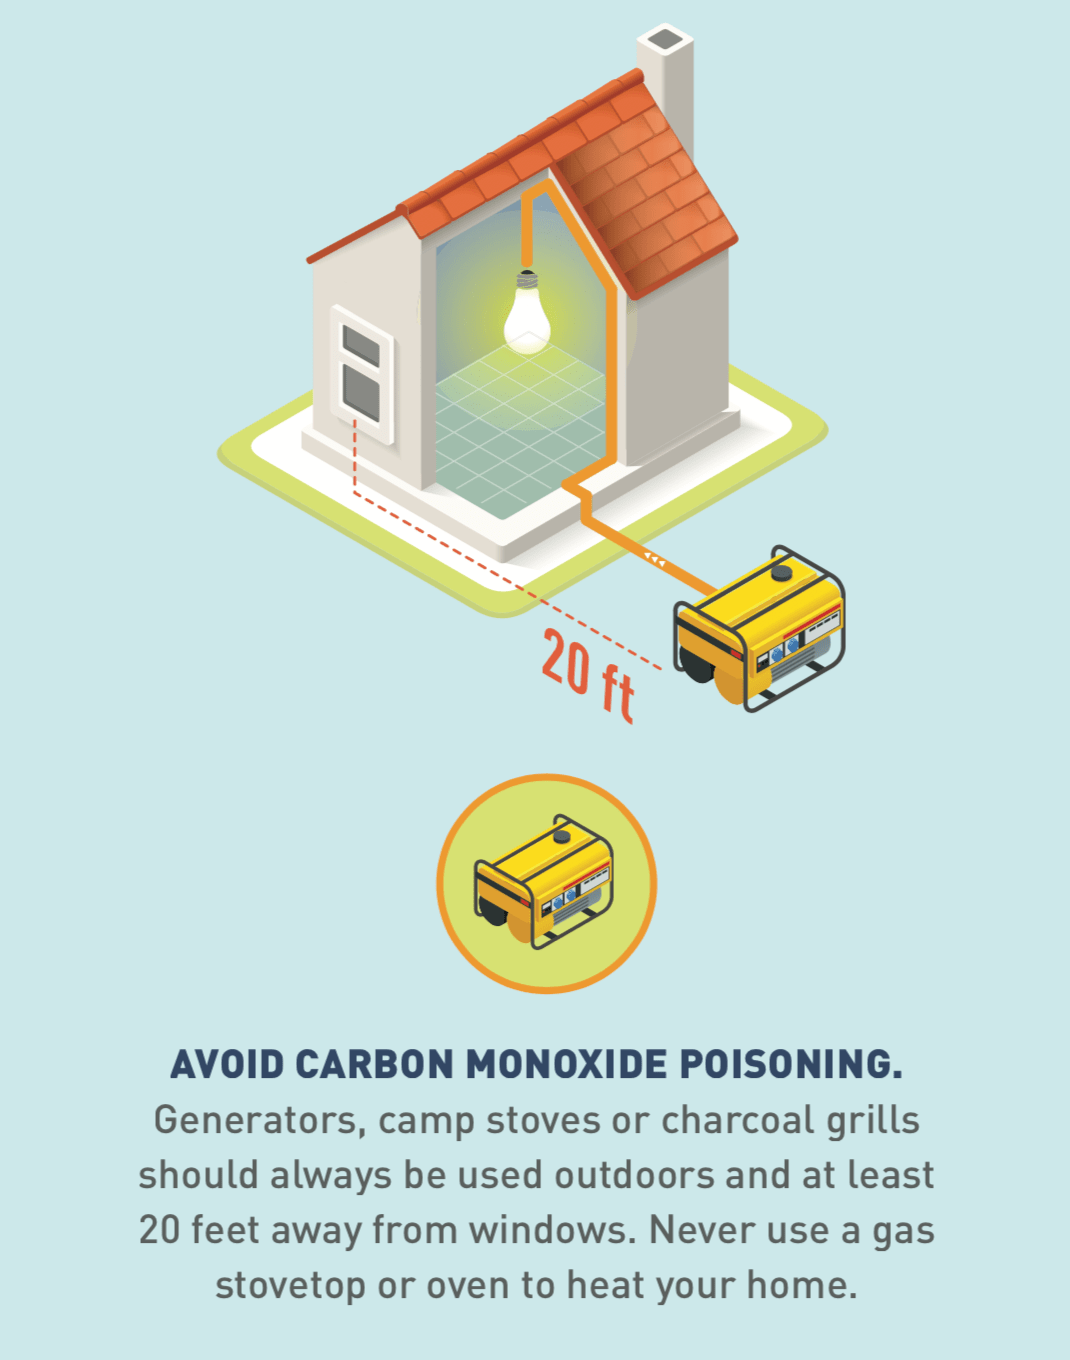 Illustrated icon of a generator placed outside and 20 feet away from a window